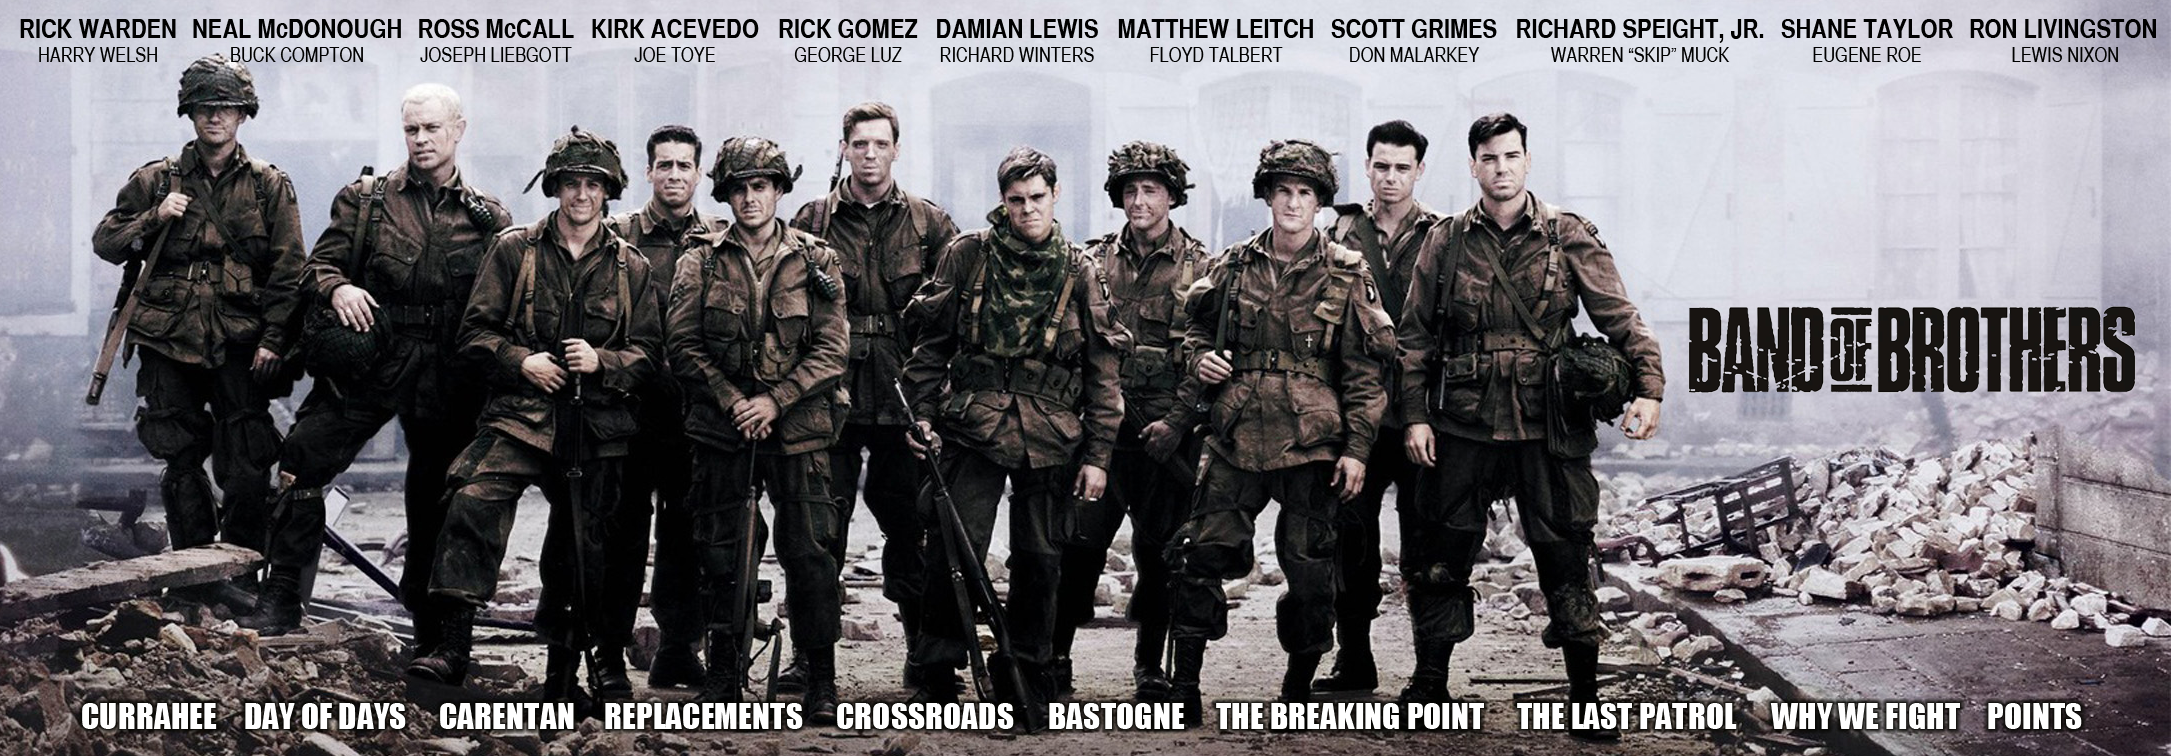 band of brothers film review Home essays band of brothers book review band of brothers book review band of brothers film review essay band of brothers band of brothers is a television series based on easy company from the 101st airborne division.